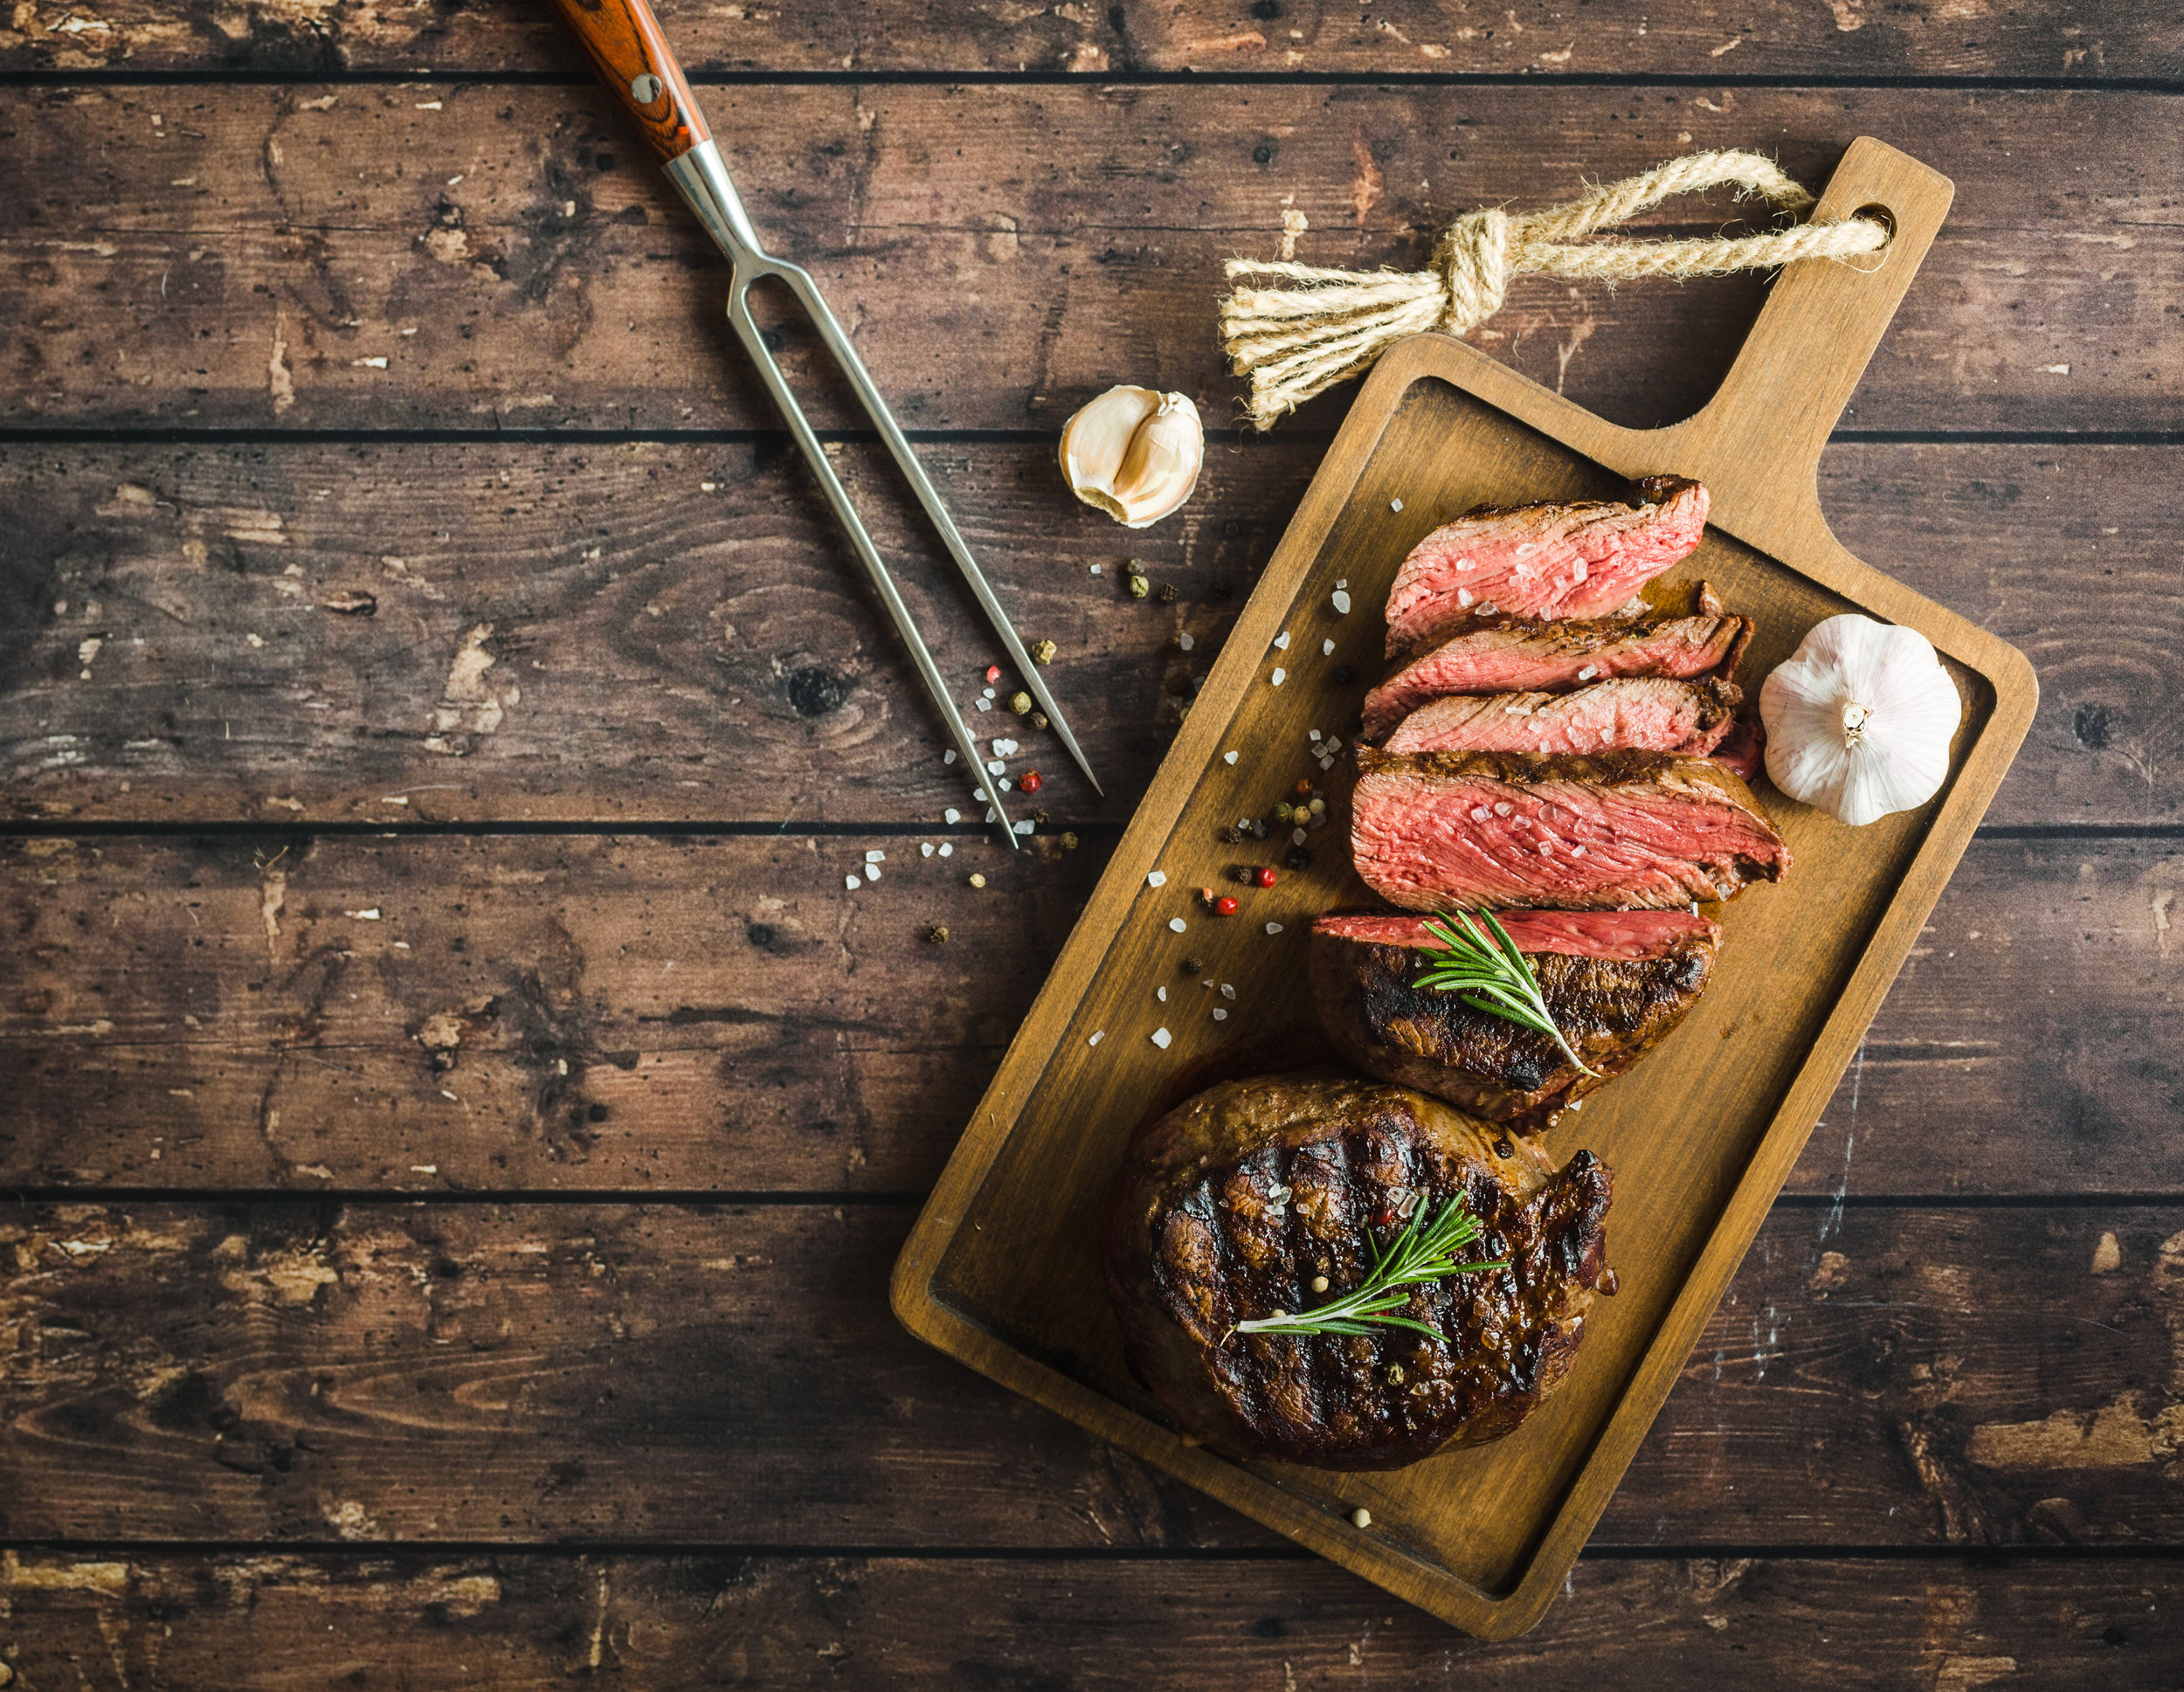 Sliced grilled marbled meat steak Filet Mignon seasonings fork wooden cutting board. Space for text. Juicy meat steak.jpg